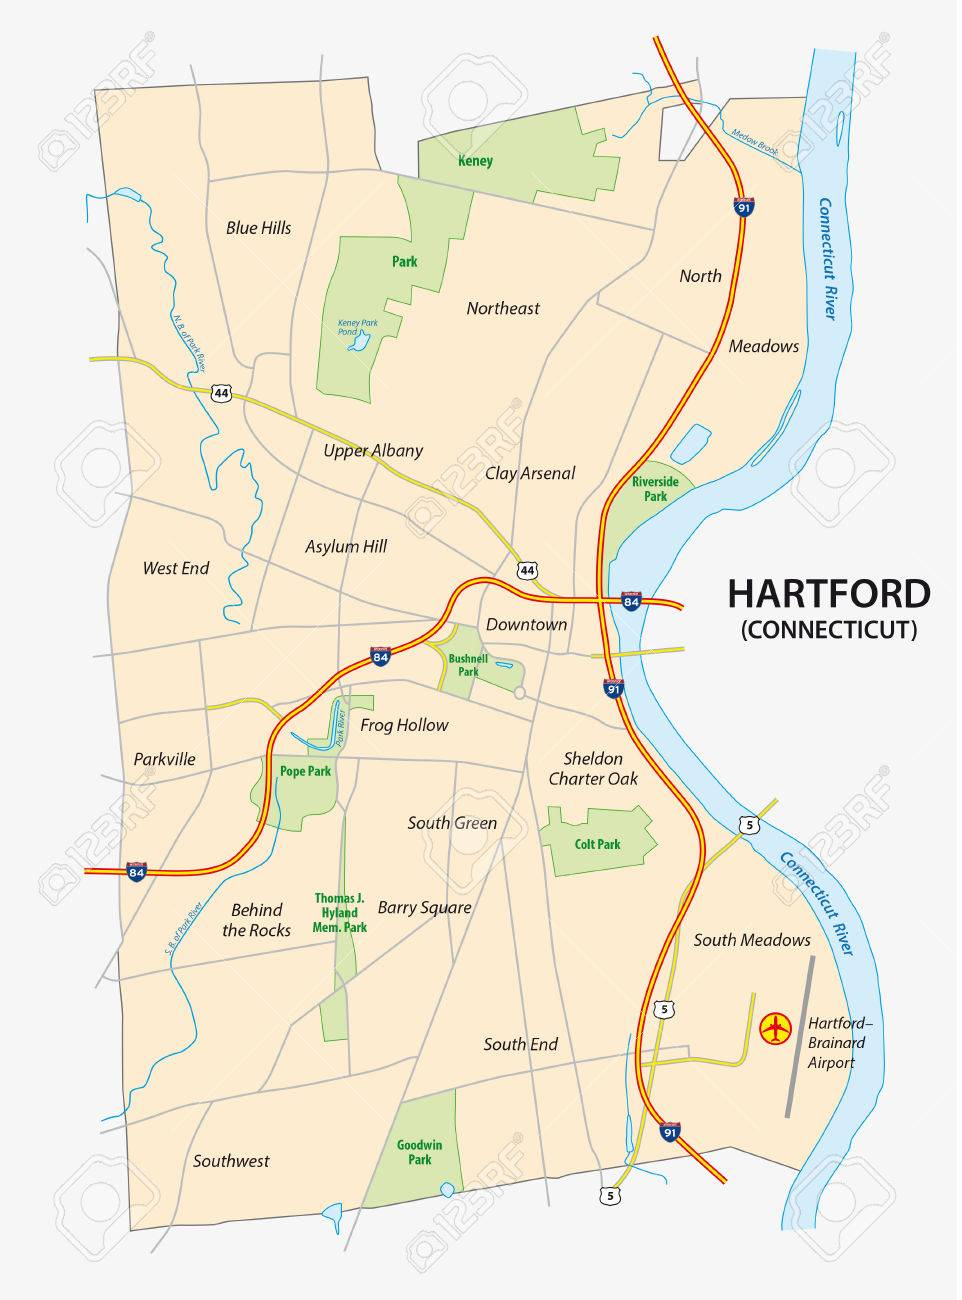 Road Map Of Hartford The Capital Of The Us State Of Connecticut - Connecticut-in-us-map